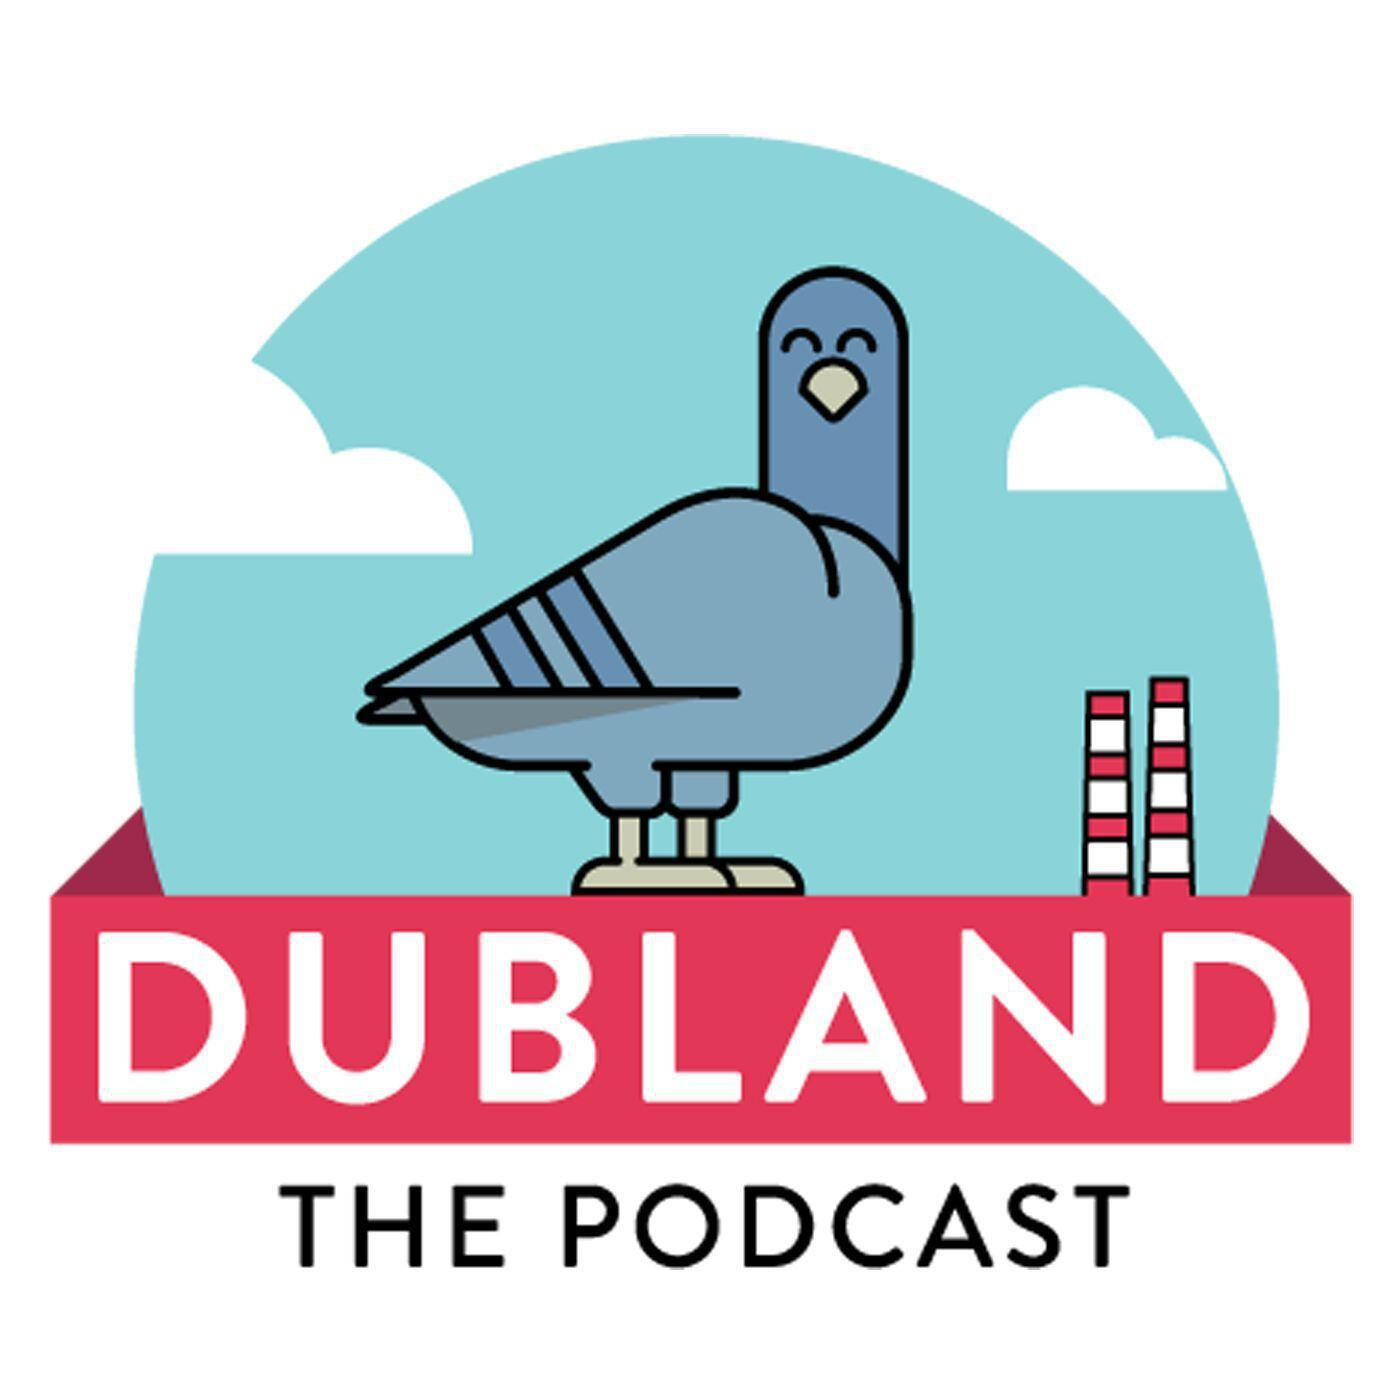 DUBLAND THE PODCAST EPISODE 16